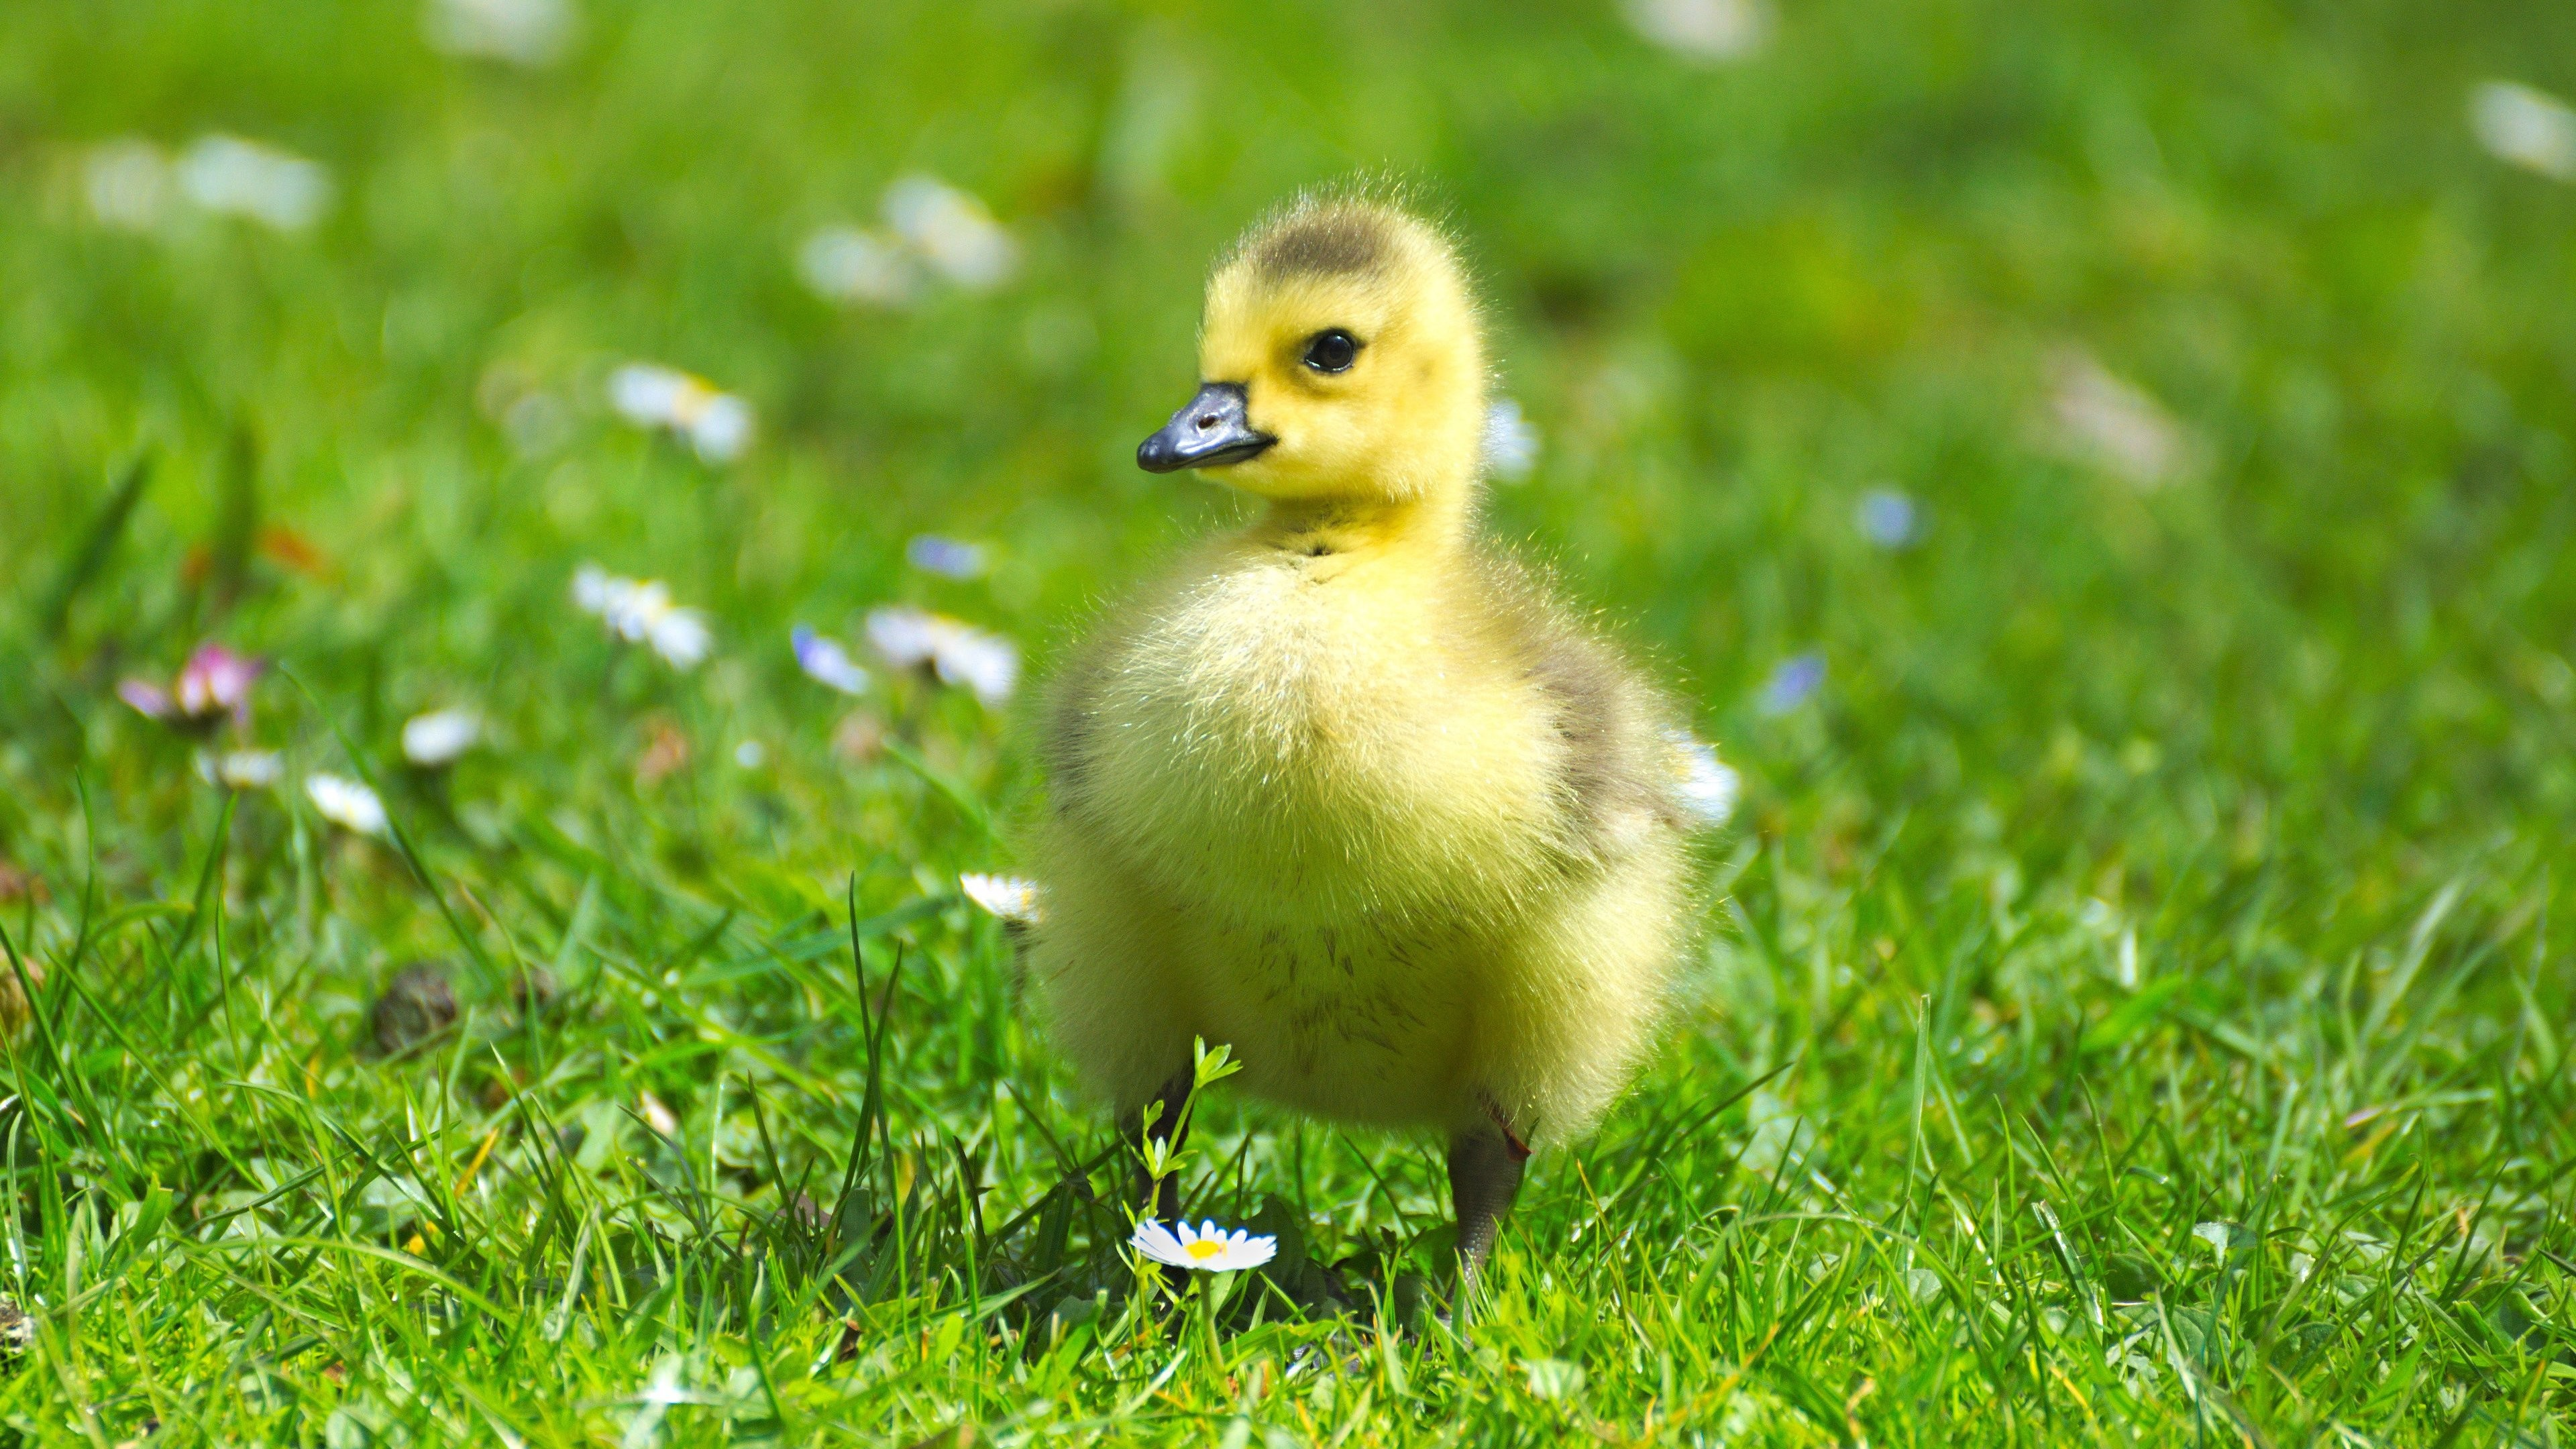 Res: 3840x2160, Fluffy Baby Goose